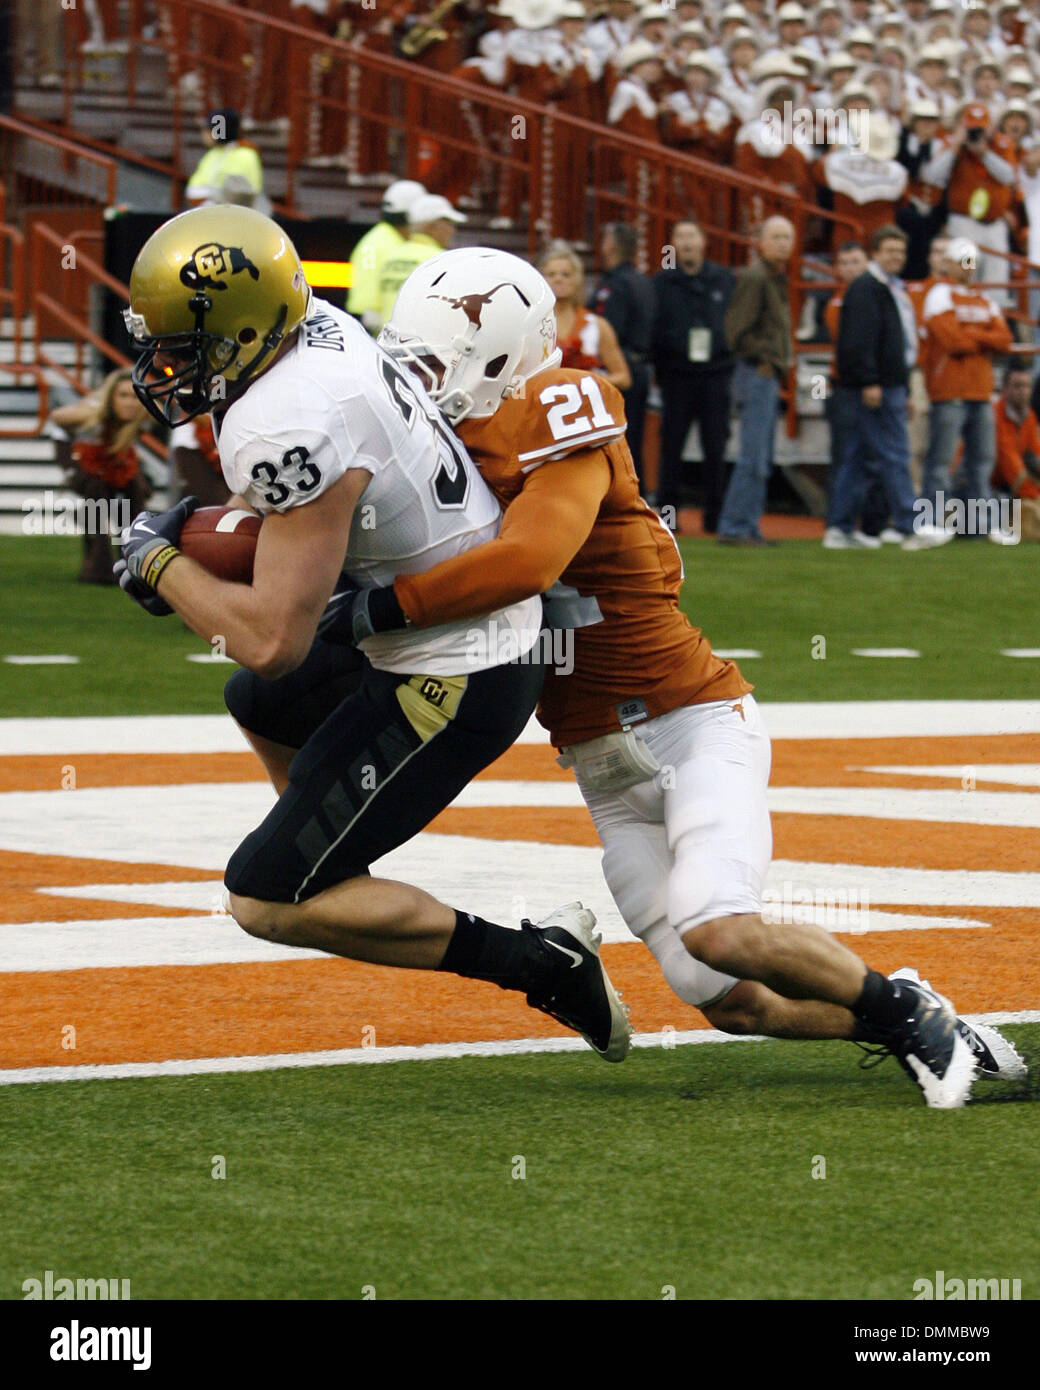 10 OCT 2009: Colorado tight end Patrick Devenny hauls in a Cody Hawkins pass from 25 yards out in front of Texas safety Blake Gideon for the first score of the game. (Credit Image: © Southcreek Global/ZUMApress.com) - Stock Image